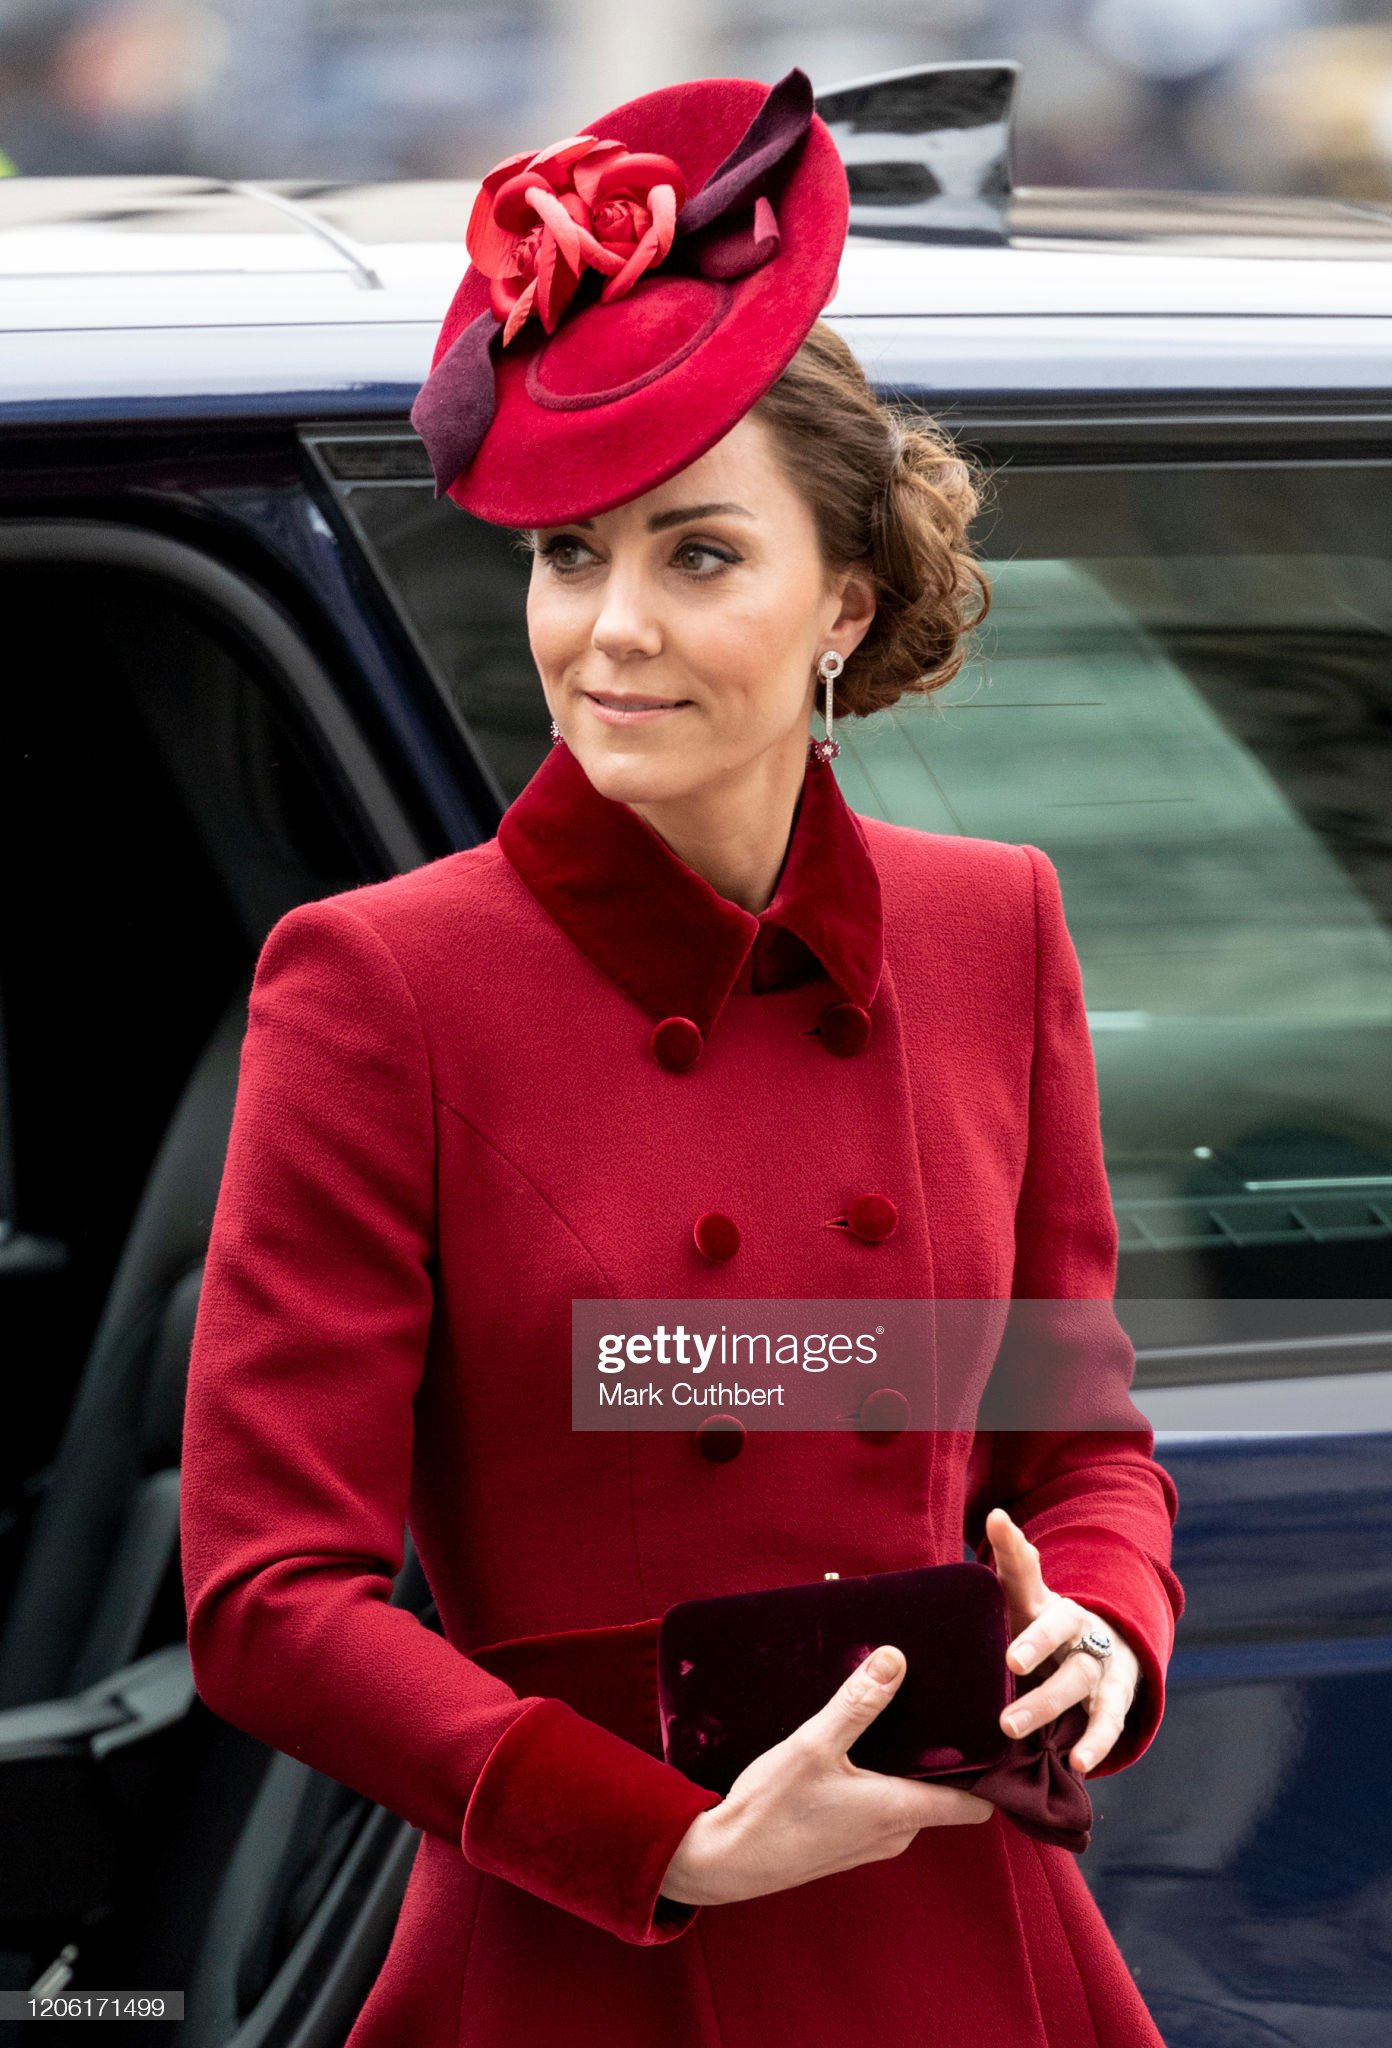 https://media.gettyimages.com/photos/catherine-duchess-of-cambridge-attends-the-commonwealth-day-service-picture-id1206171499?s=2048x2048